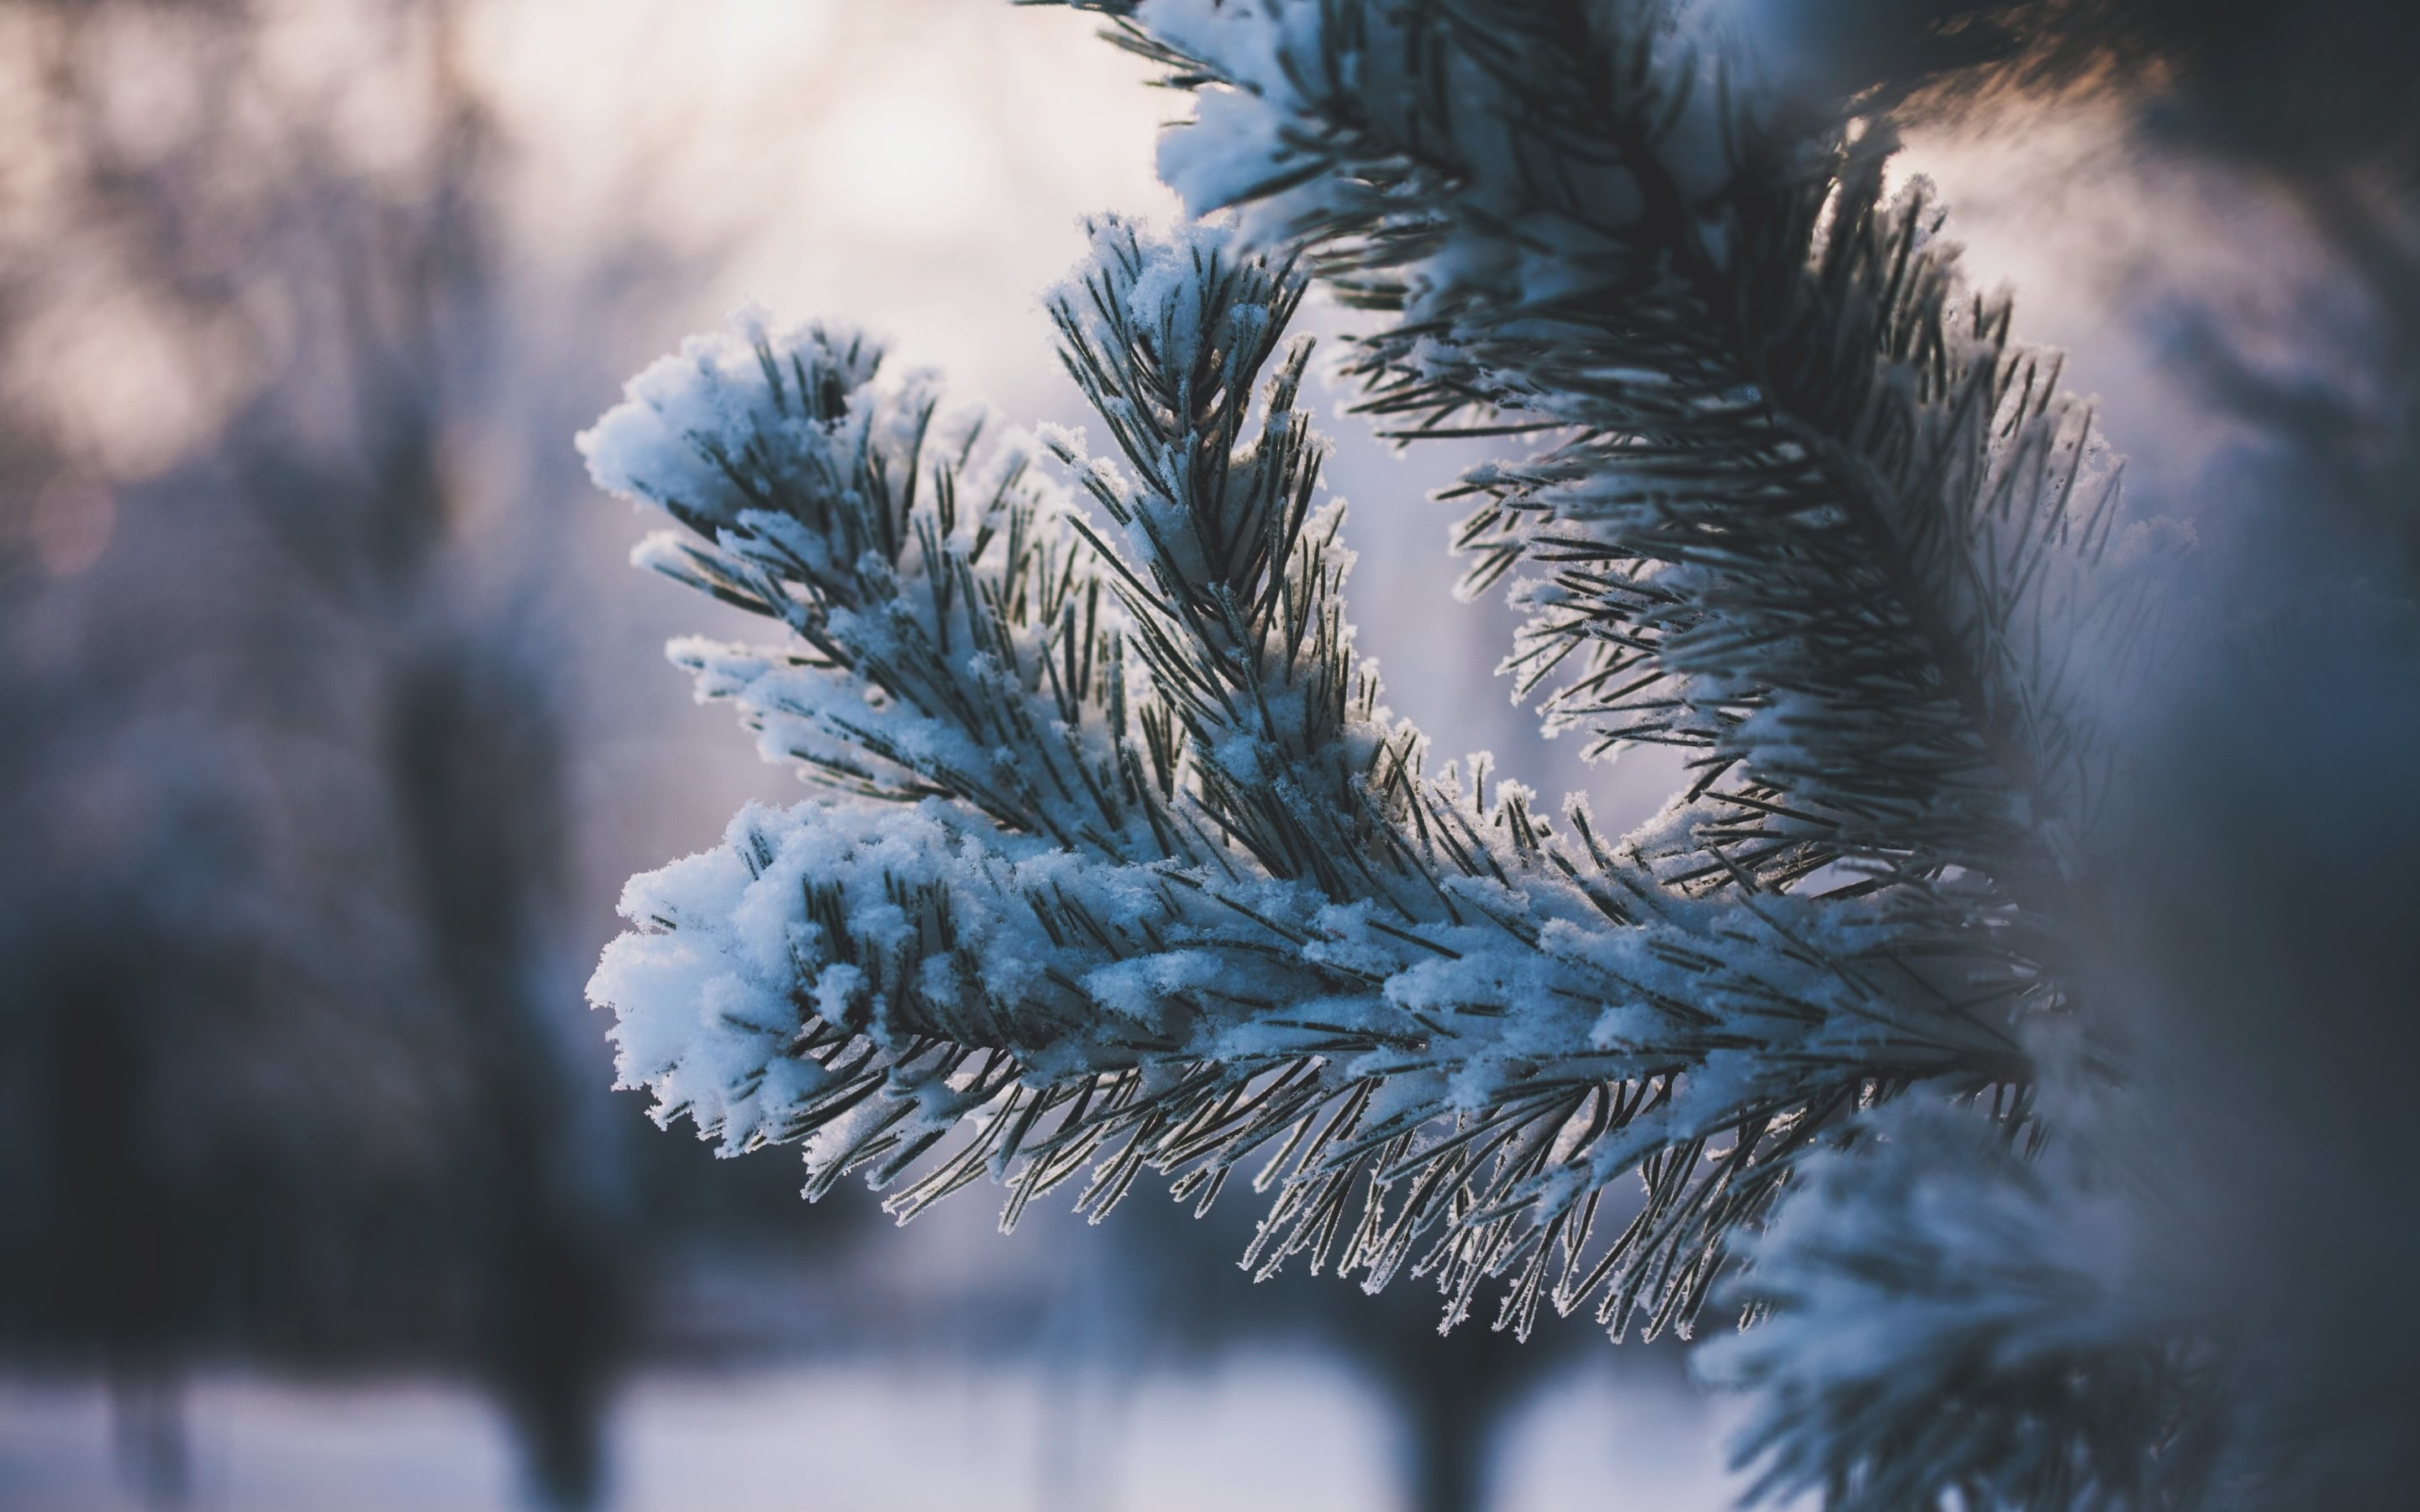 2880x1800 4K HD Wallpaper: Pine Needles covered with Snow · Pictures from Winter by  Maria